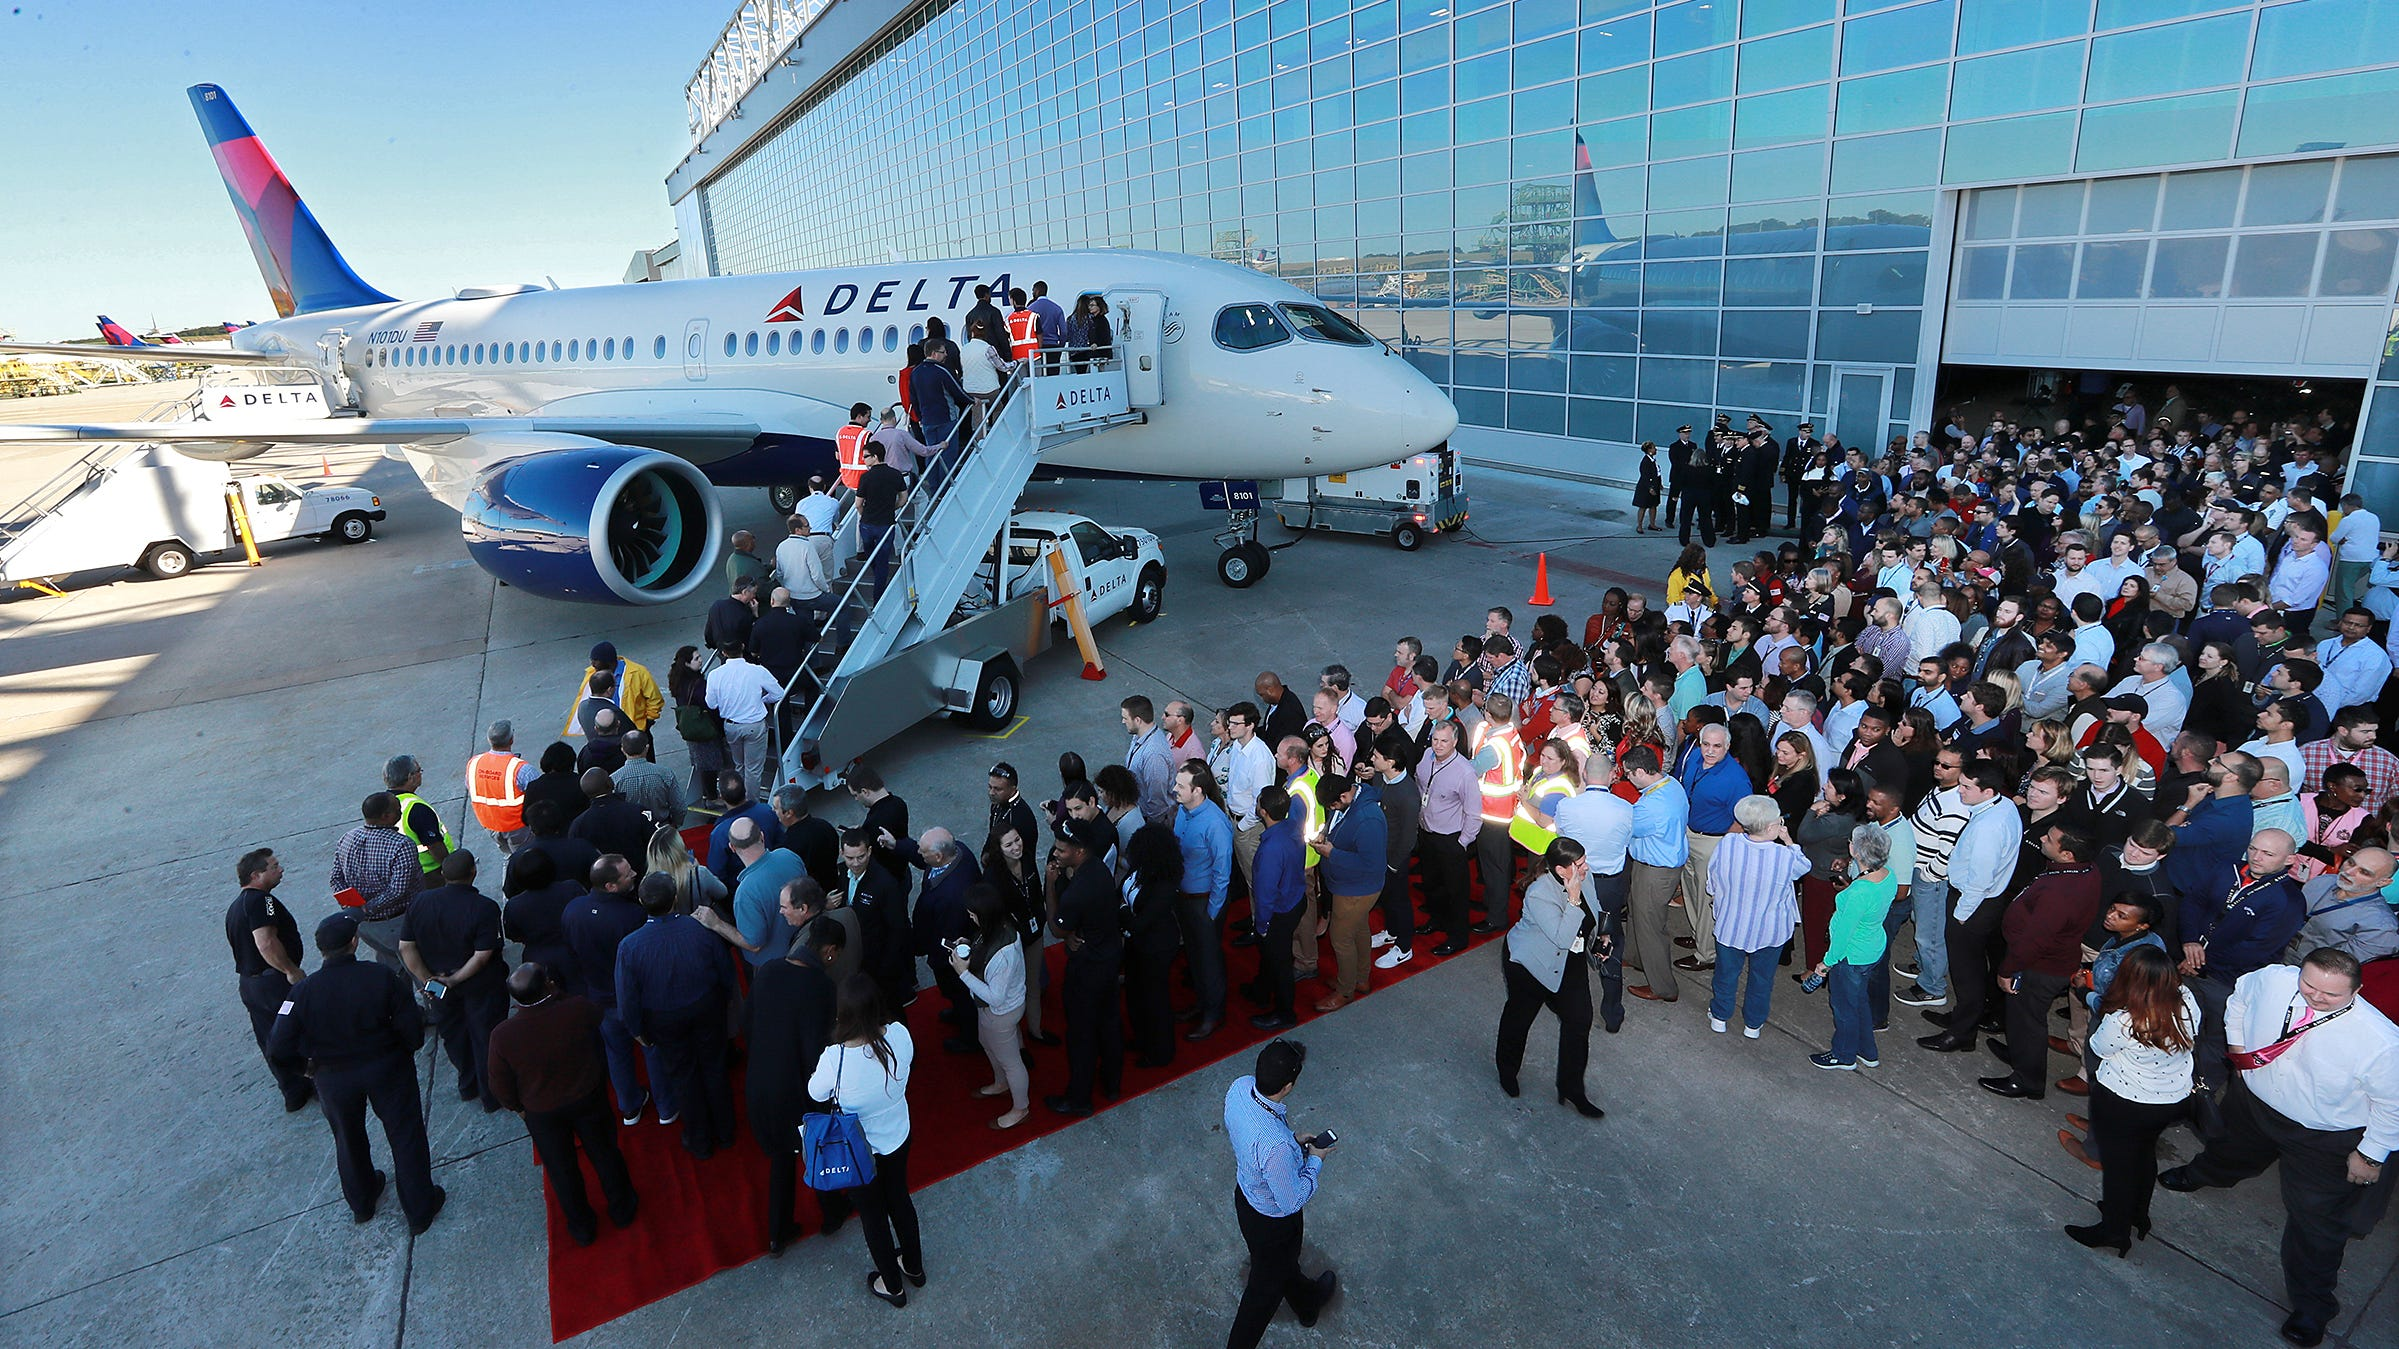 Delta employees and guests tour the new A220 aircraft during an unveiling at the Delta Air Lines TechOps on Oct. 29, 2018, in Atlanta.